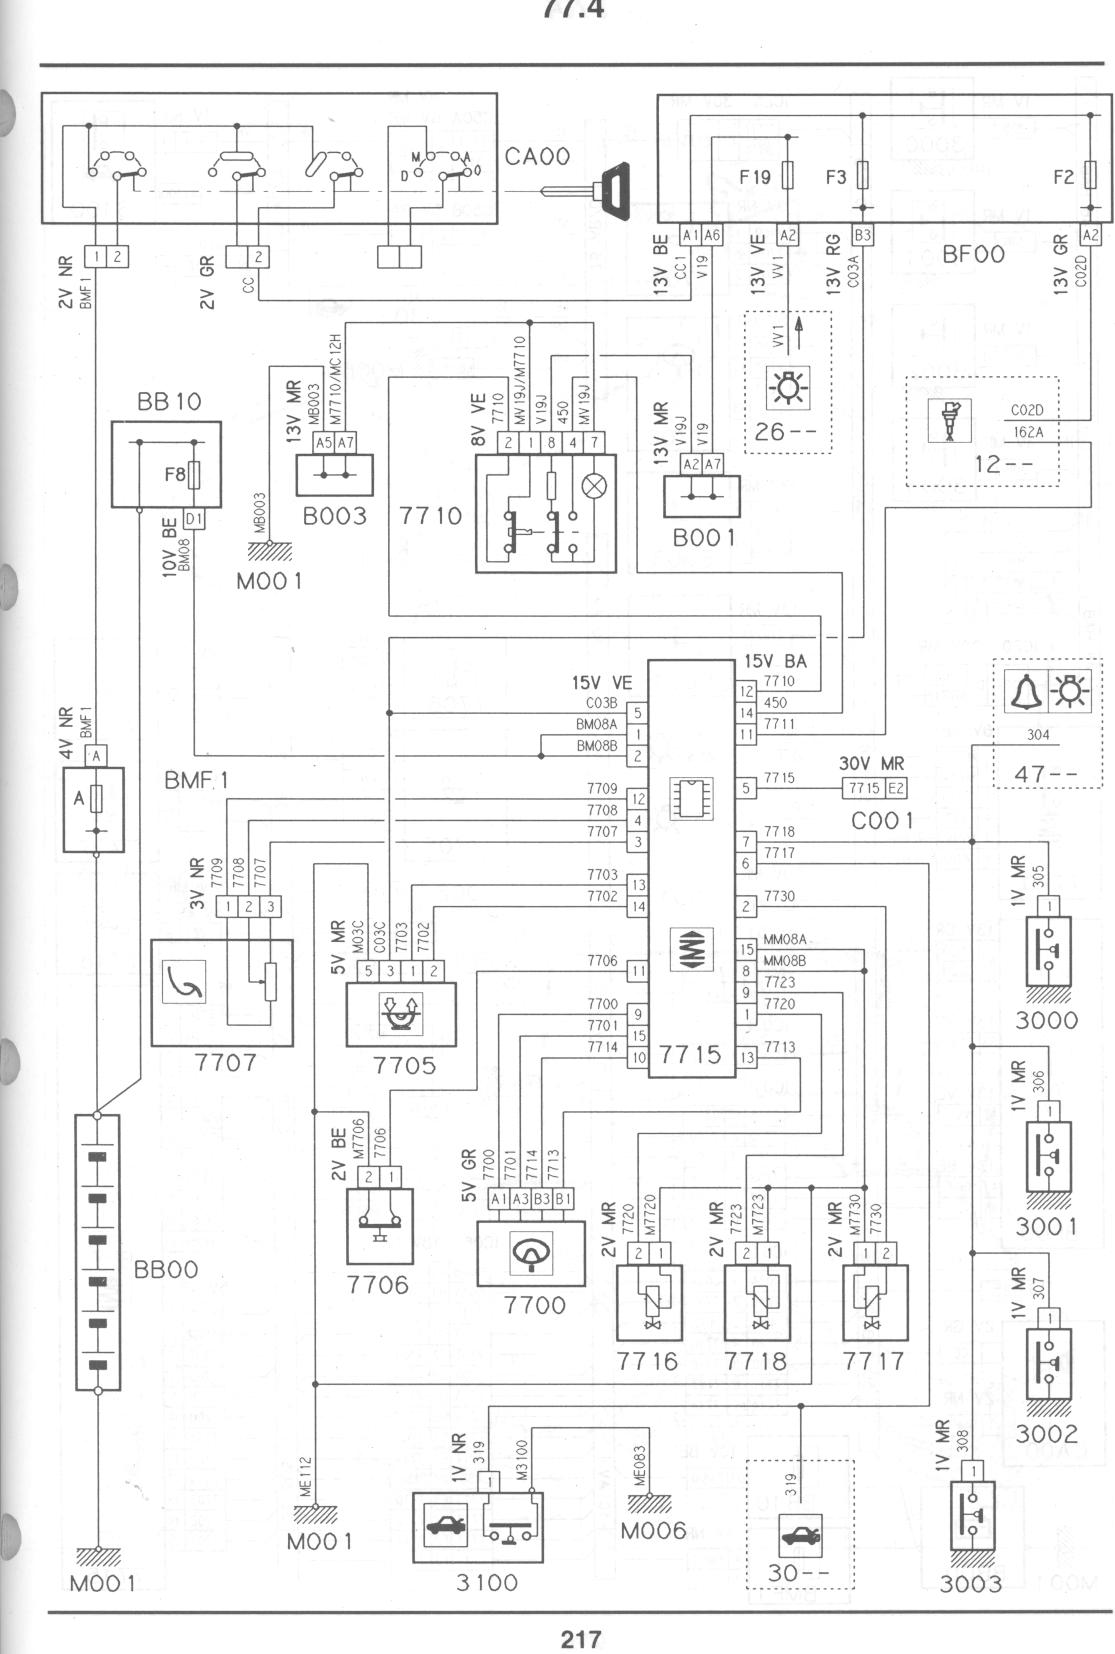 Citroen C5 Wiring Diagram Pdf: Audi A6 C5 Wiring Diagram Download -  efcaviation.com